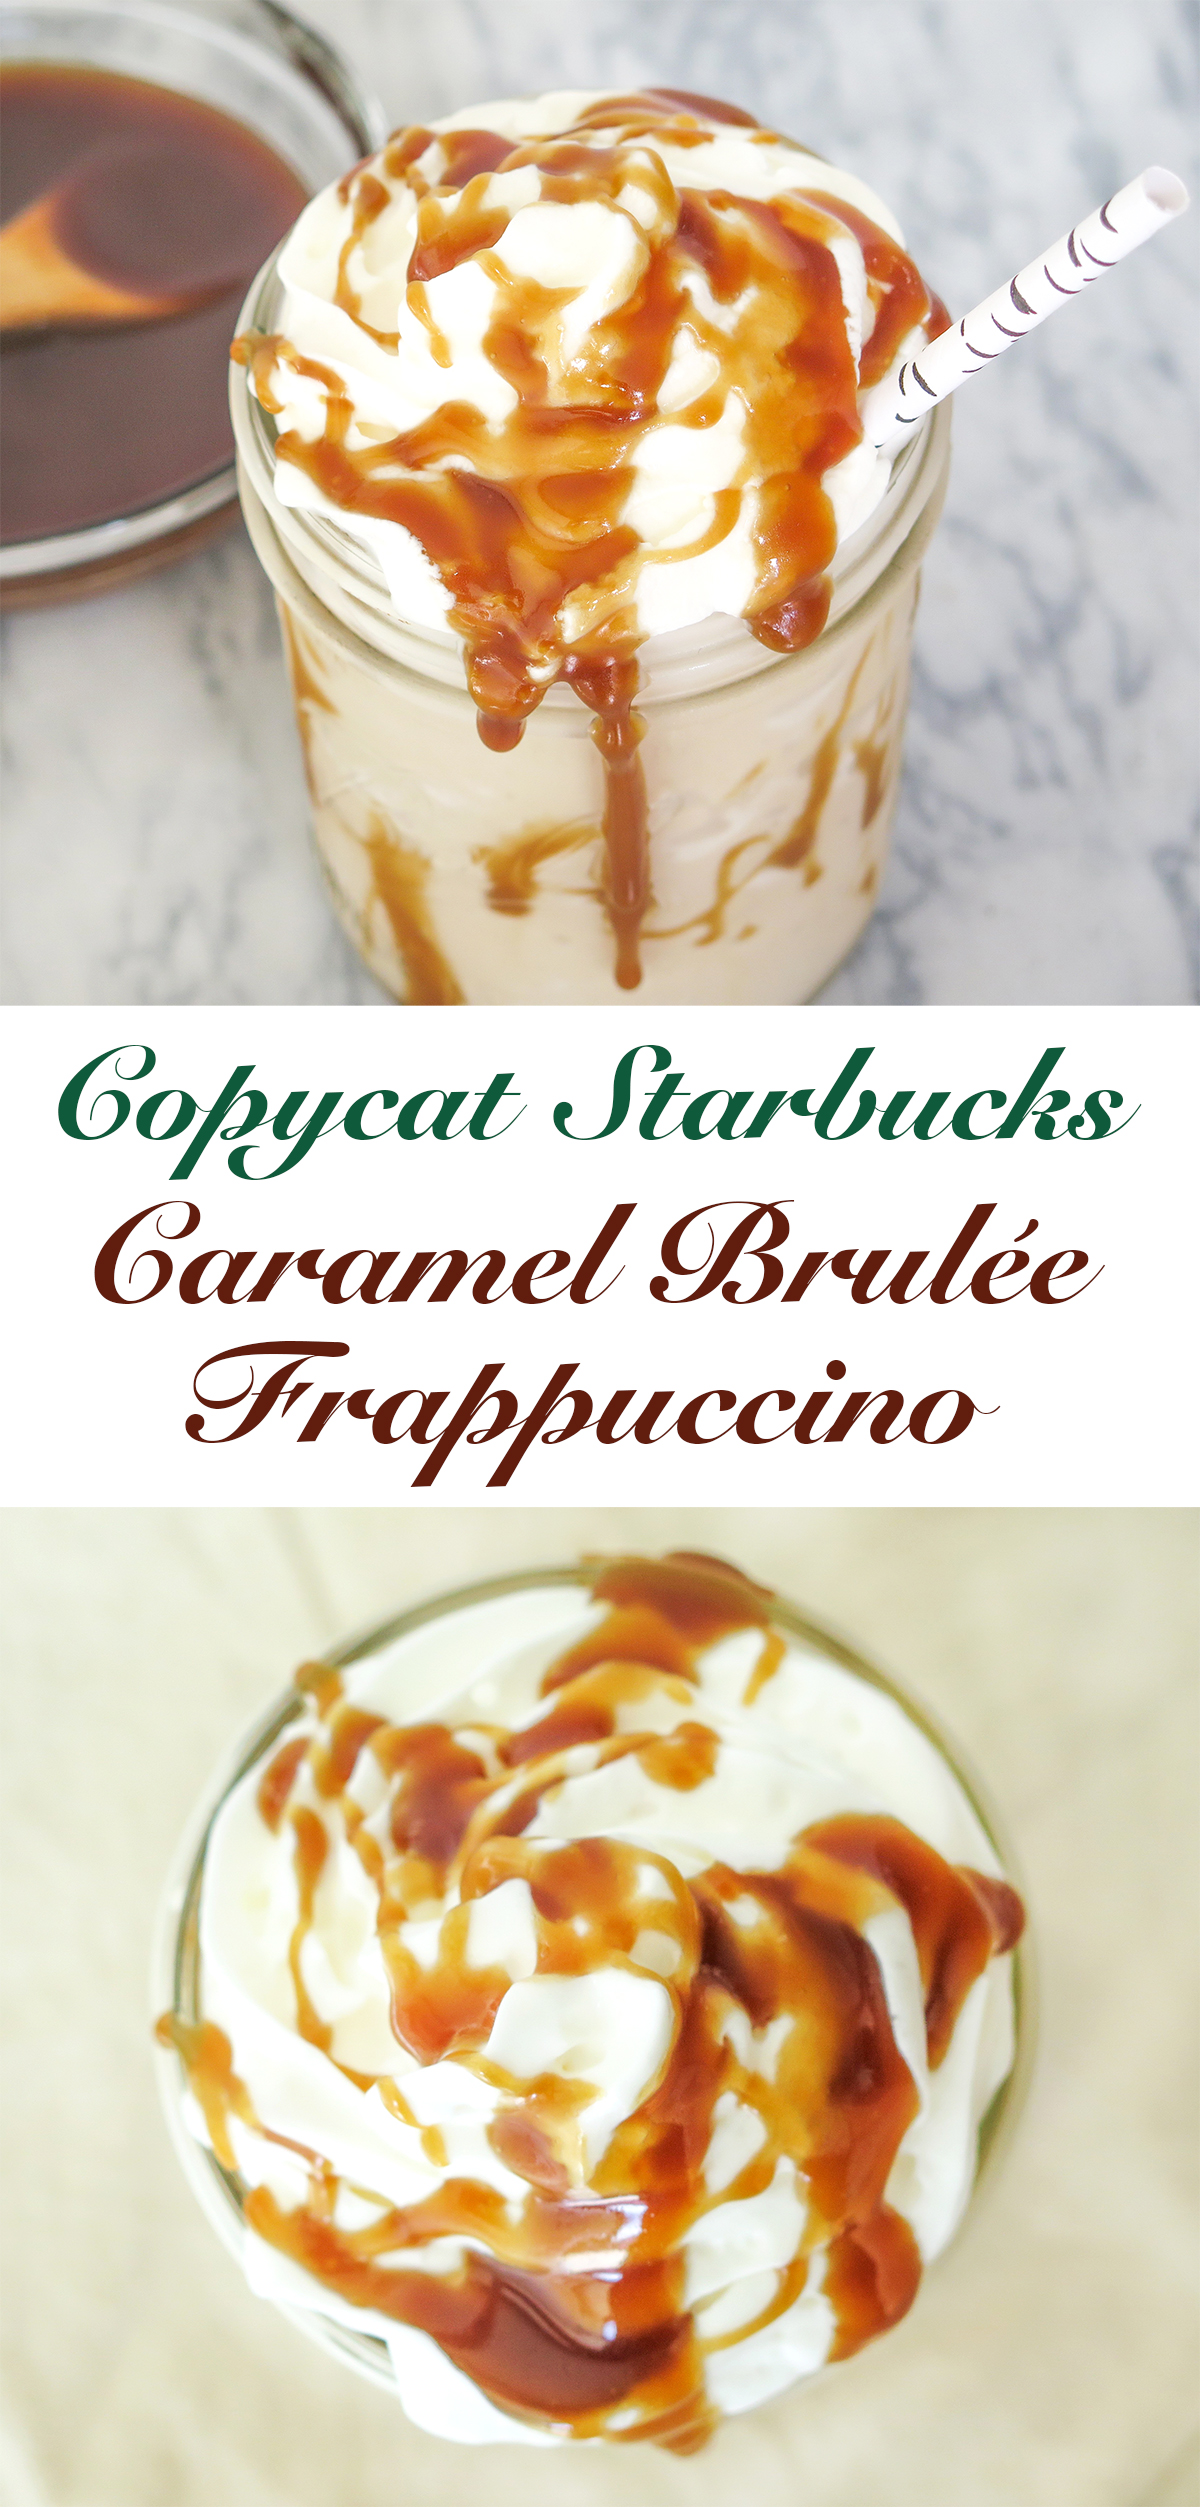 Caramel Brulee Frappuccino Recipe 3 Steps With Pictures